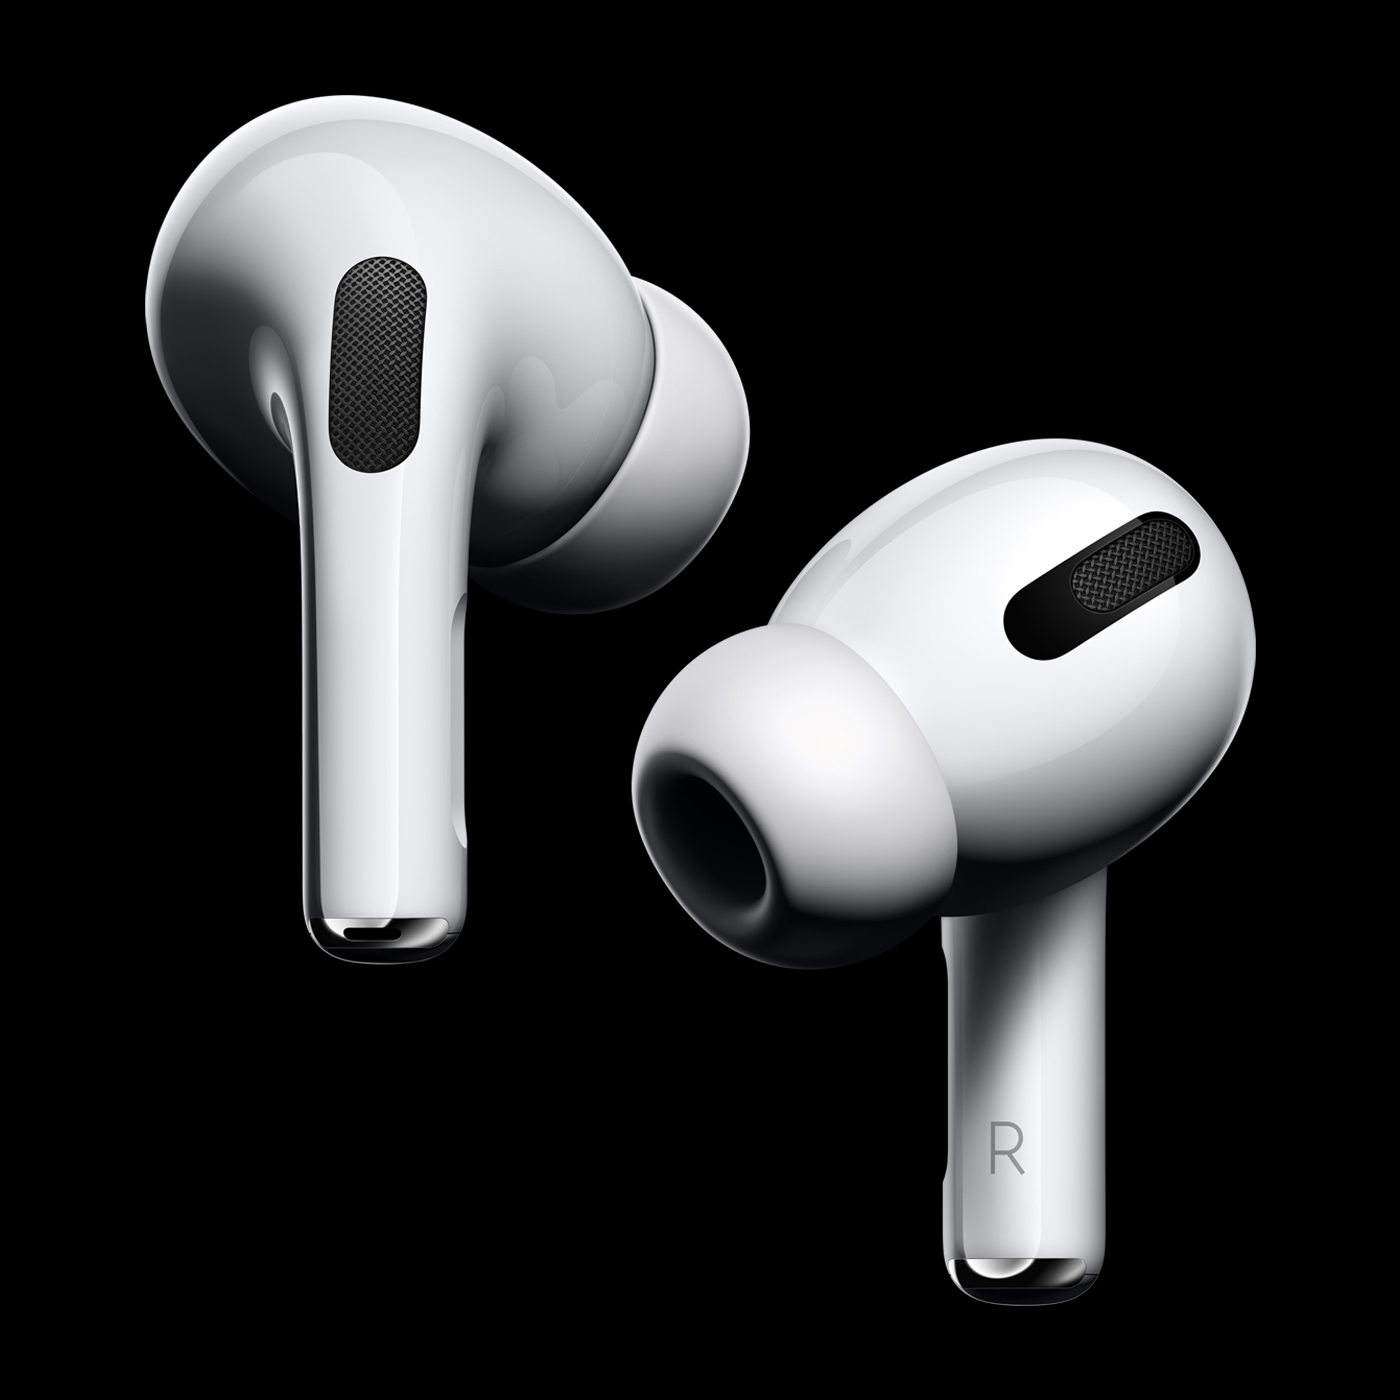 win a pair of airpods pro booth #544